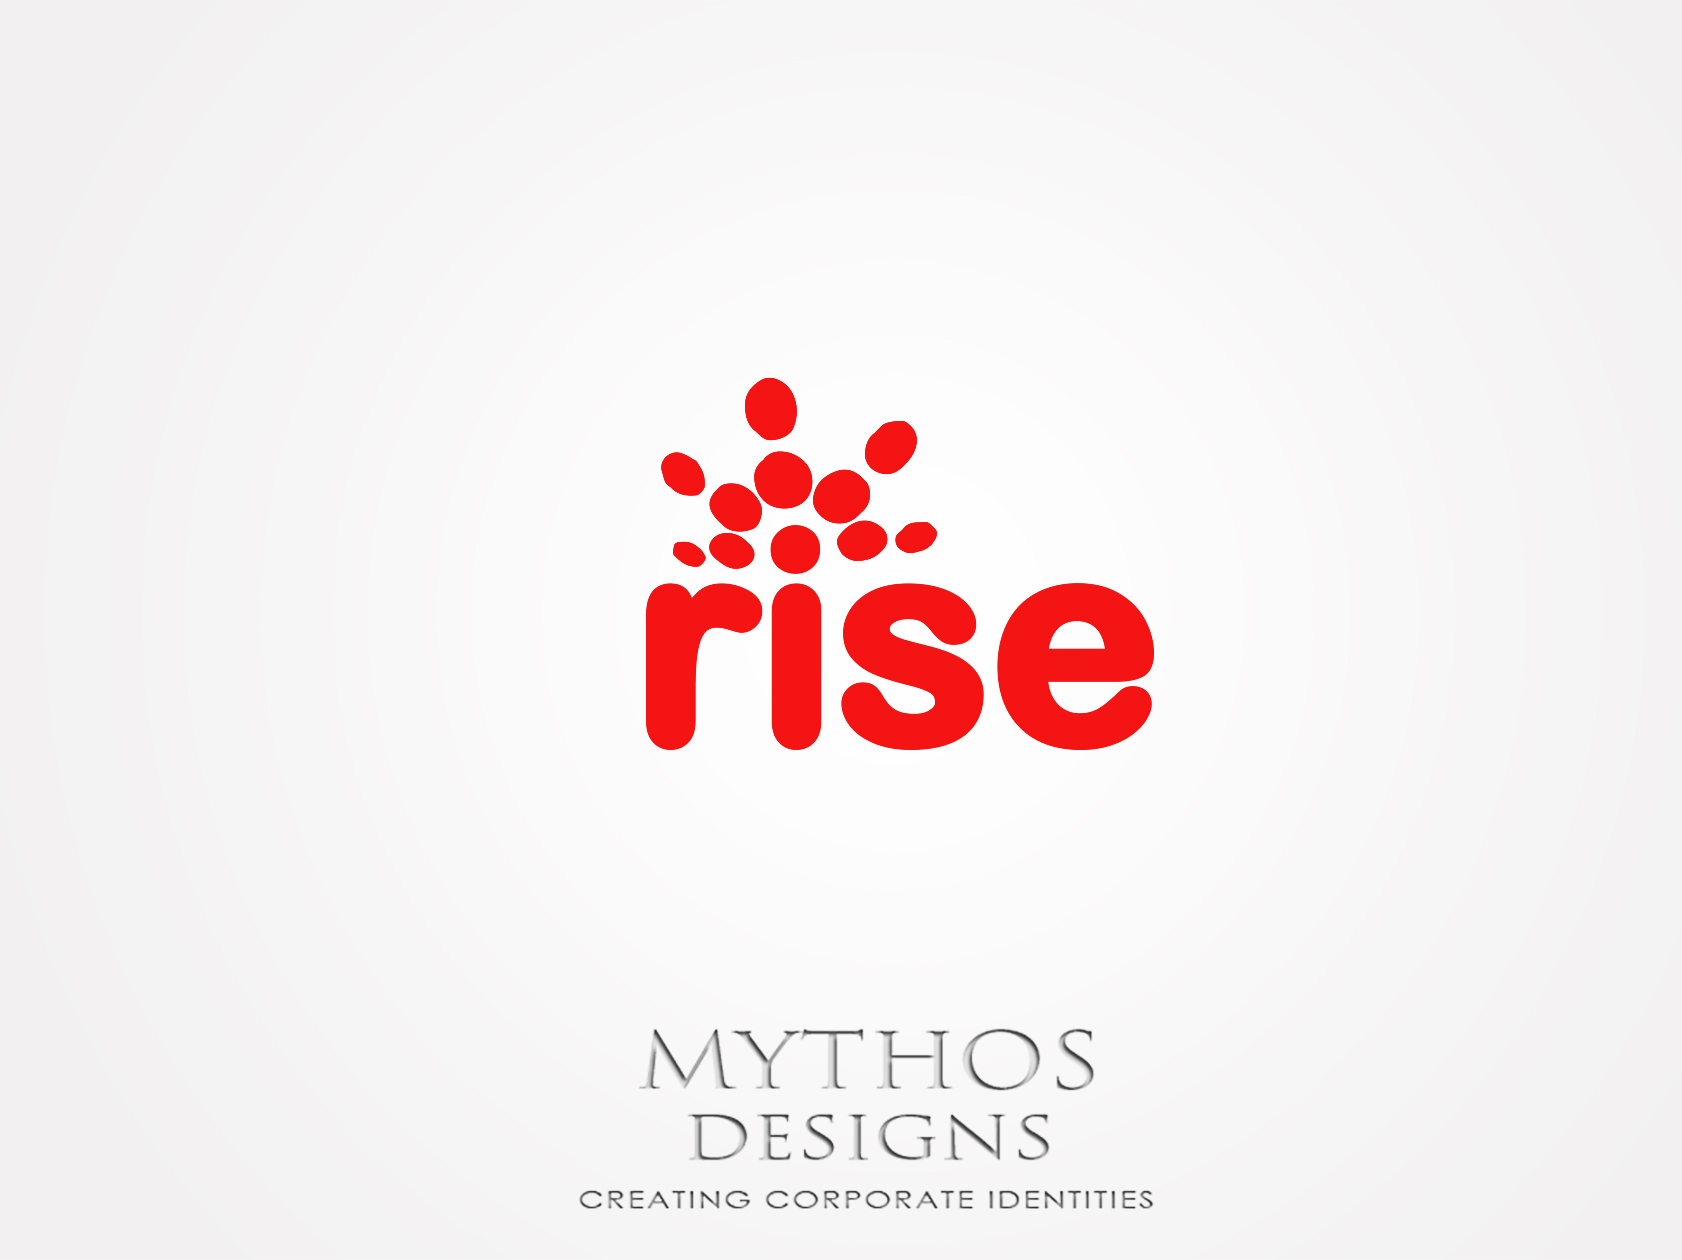 Logo Design by Mythos Designs - Entry No. 156 in the Logo Design Contest Imaginative Logo Design for Rise Tutoring Service.